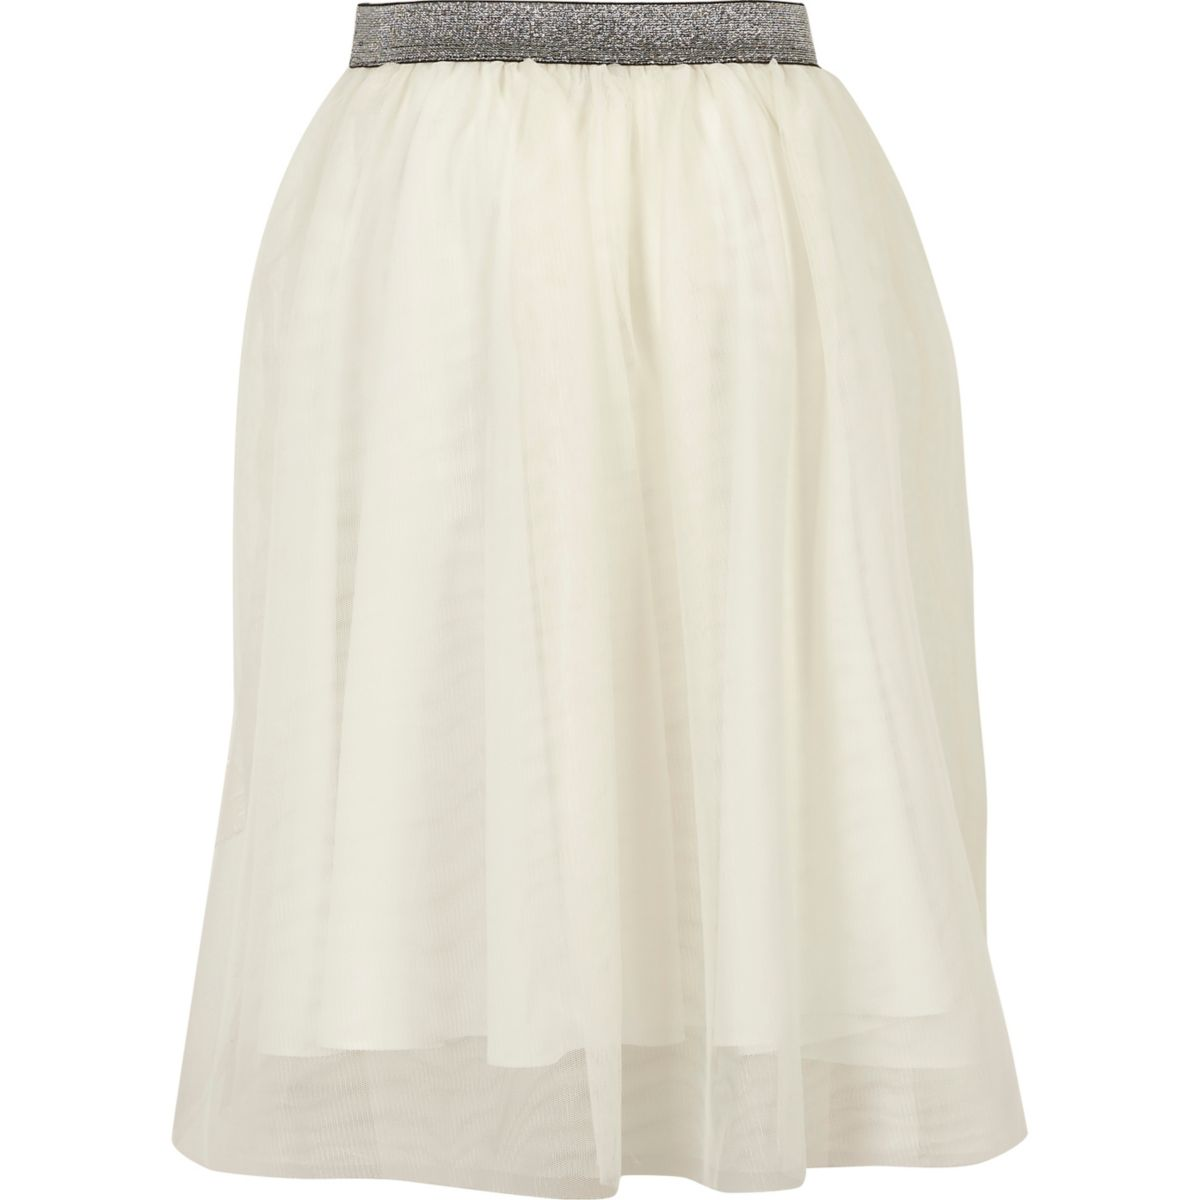 Girls white mesh midi skirt